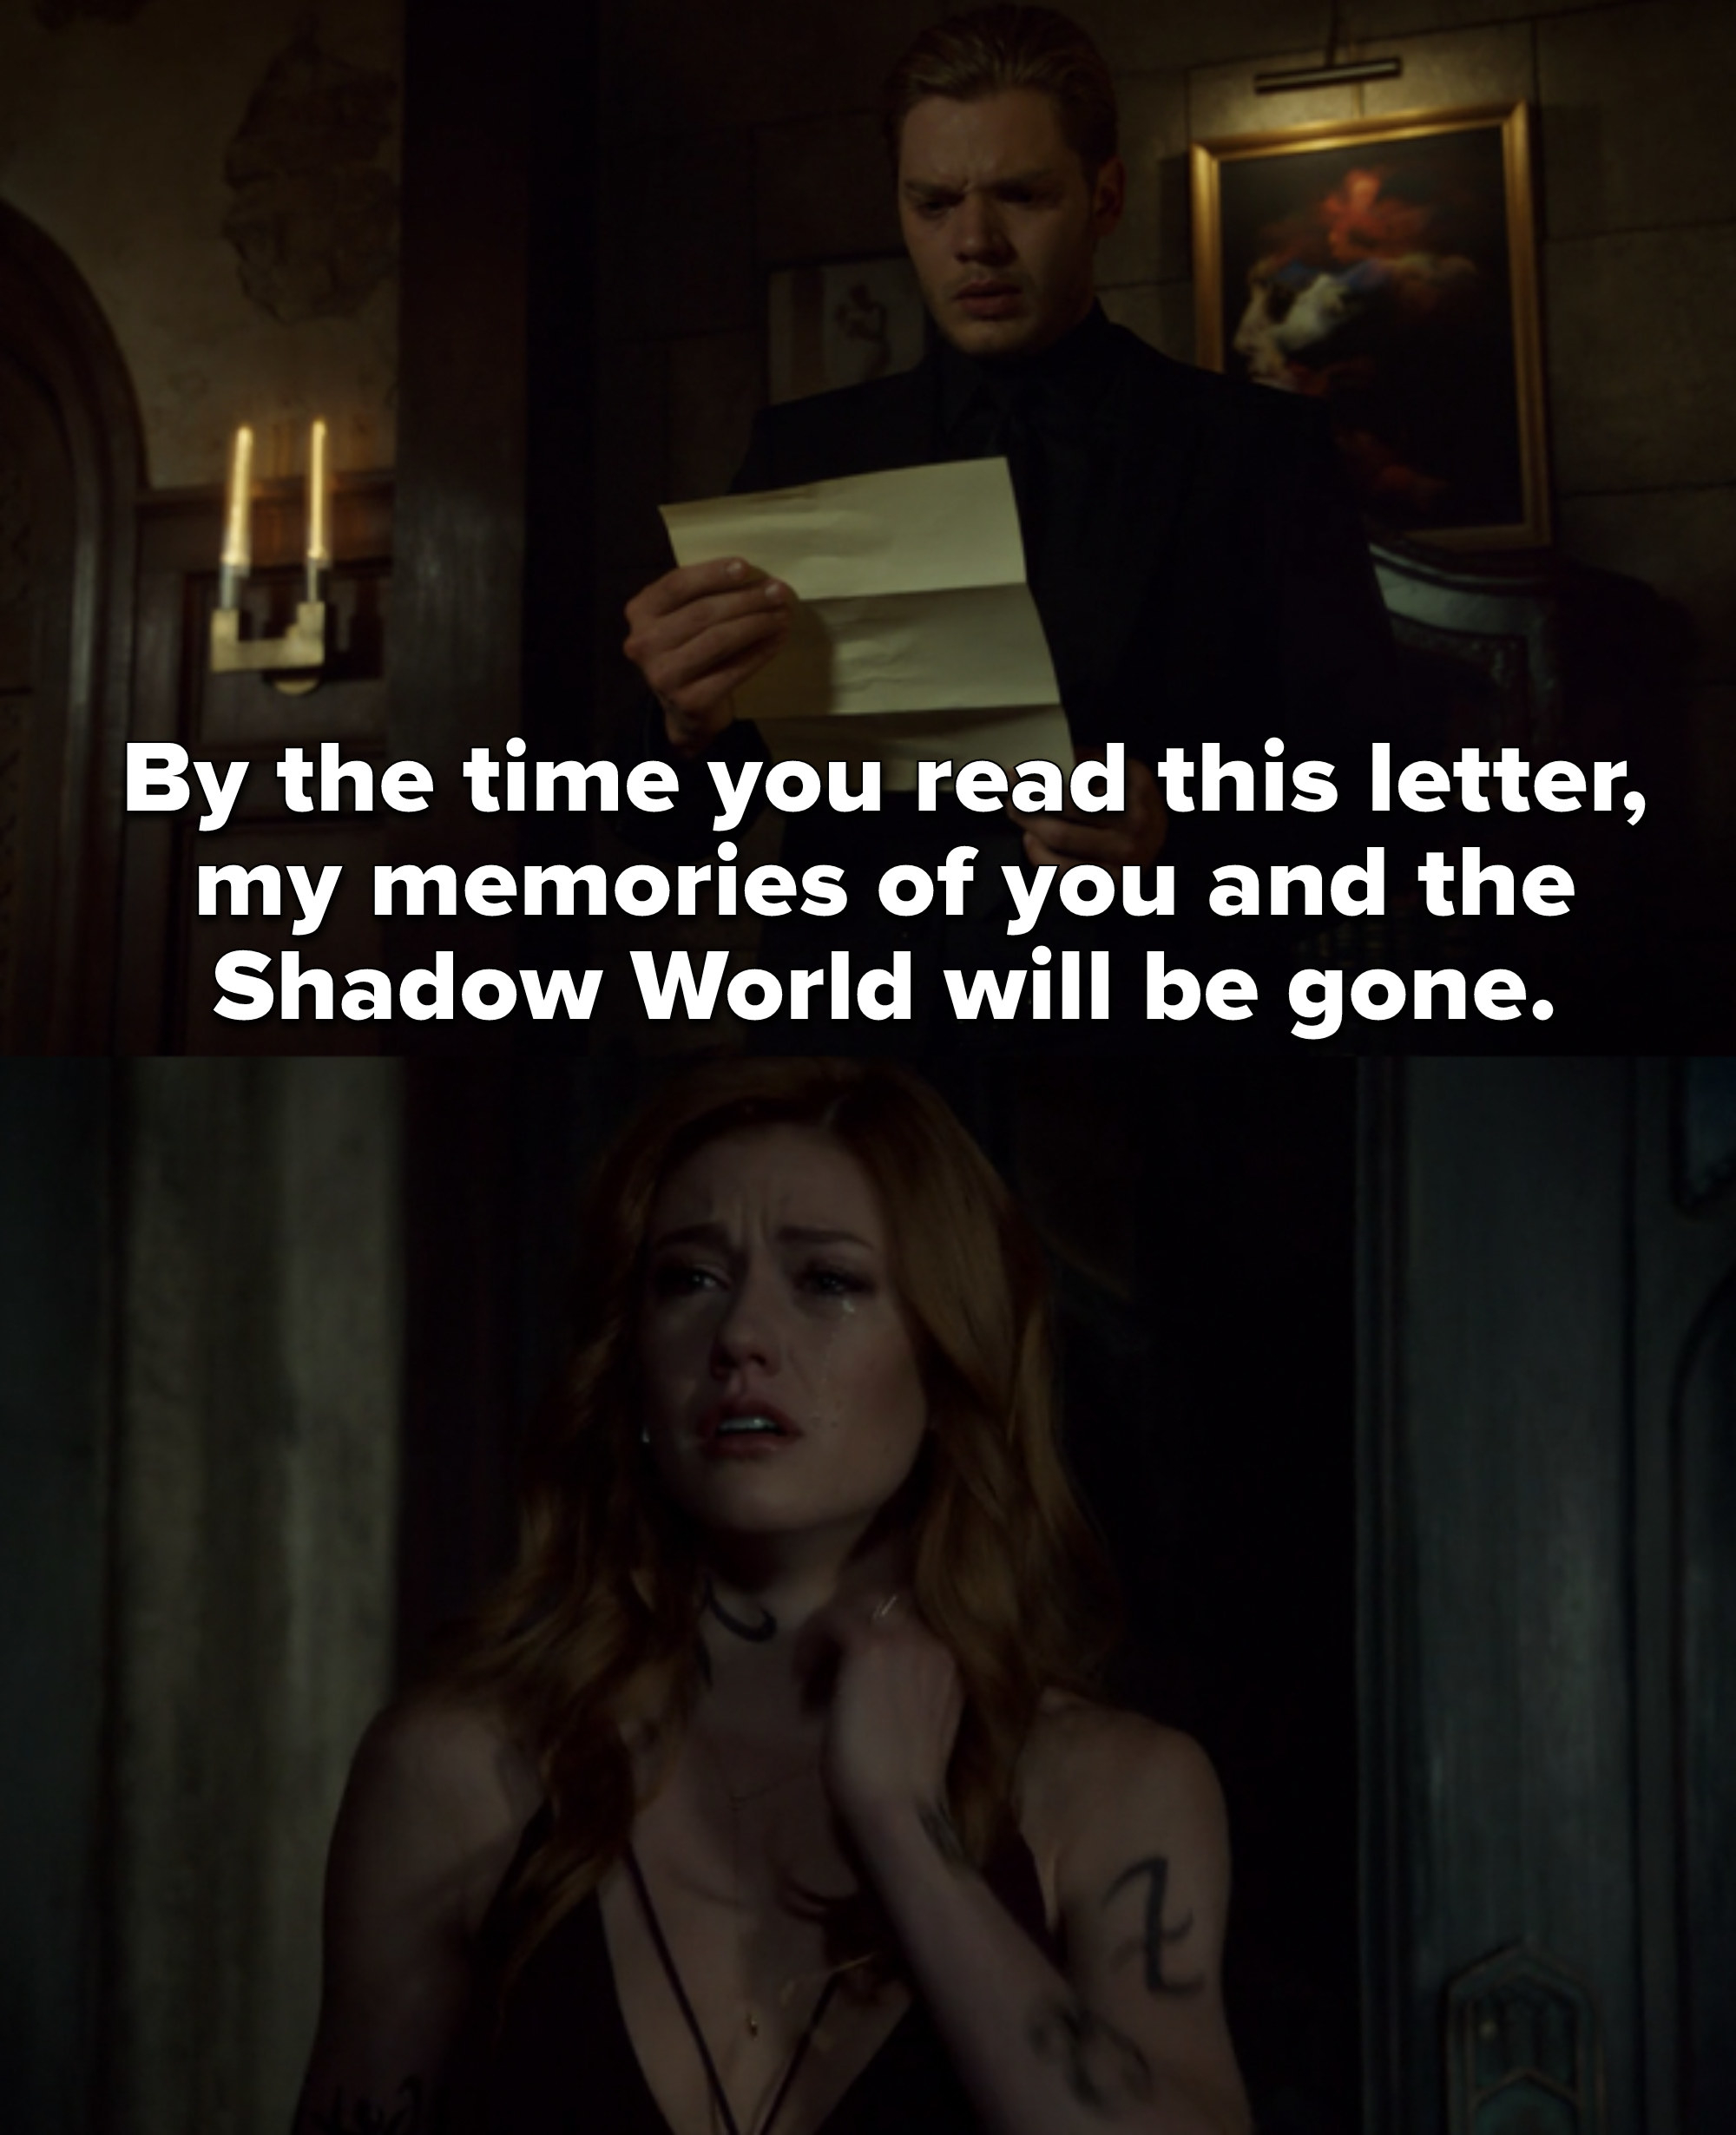 """Jace reads a letter from Clary that says """"By the time you read this letter, my memories of you and the shadow world will be gone."""" Clary leaves, crying as she forgets him"""